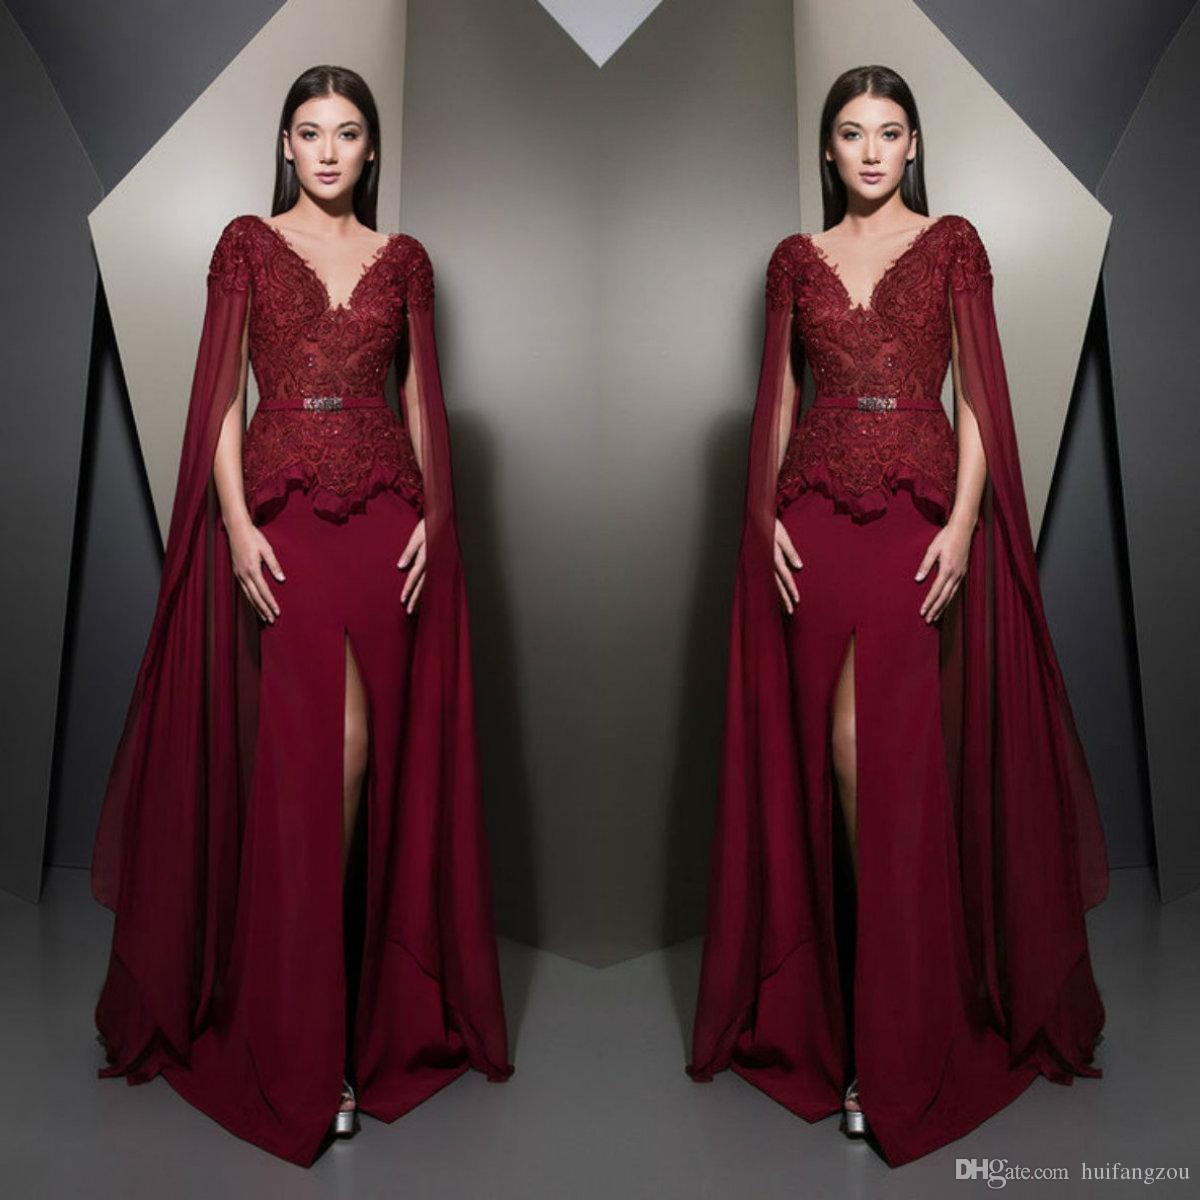 a2bc14539a4 2019 Burgundy Long Prom Dresses Ziad Nakad Cap Sleeve Lace Appliques Evening  Gowns Side Split Ruffles Women Formal Dress With Wraps Western Prom Dresses  ...